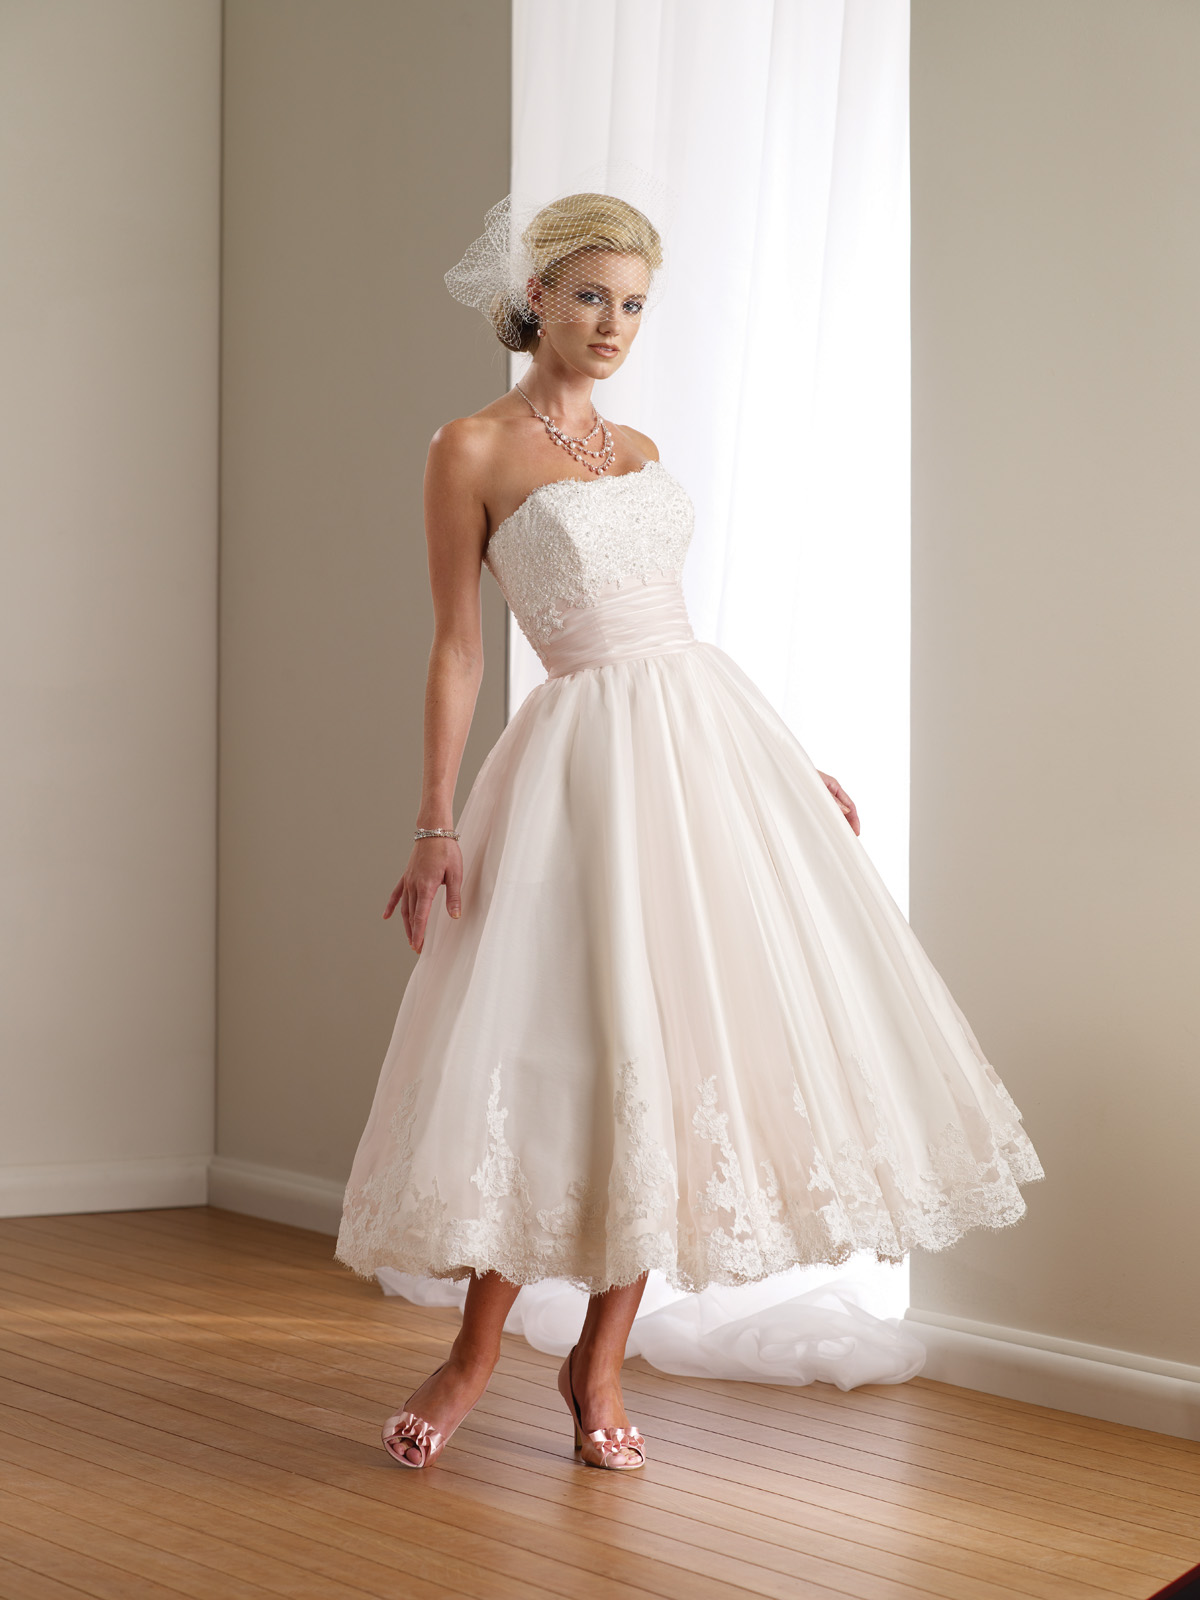 Casual wedding dresses dressed up girl for Casual lace wedding dress